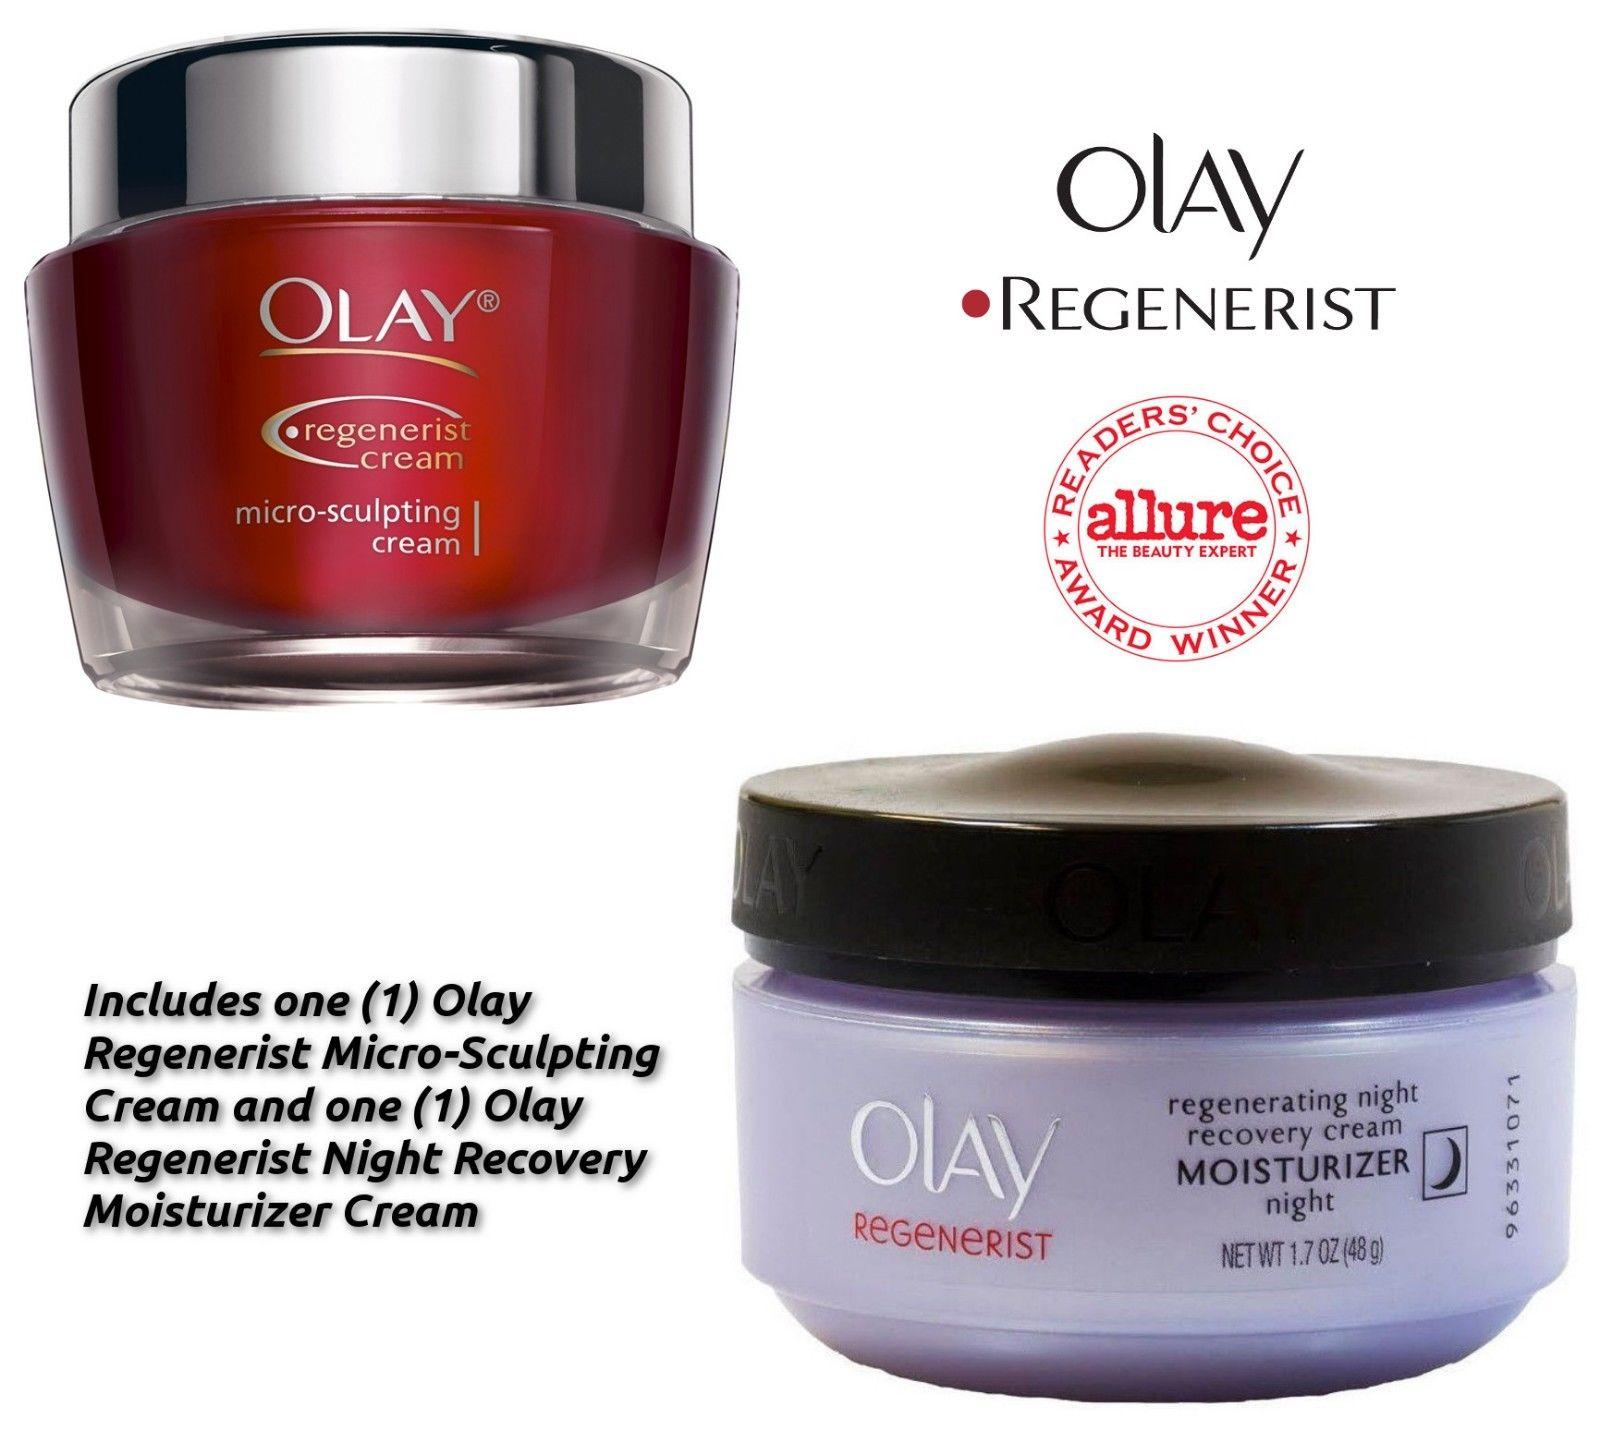 $19.99 Olay Regenerist Micro-Sculpting Hydration + Night Recovery Cream - 2 Piece Set